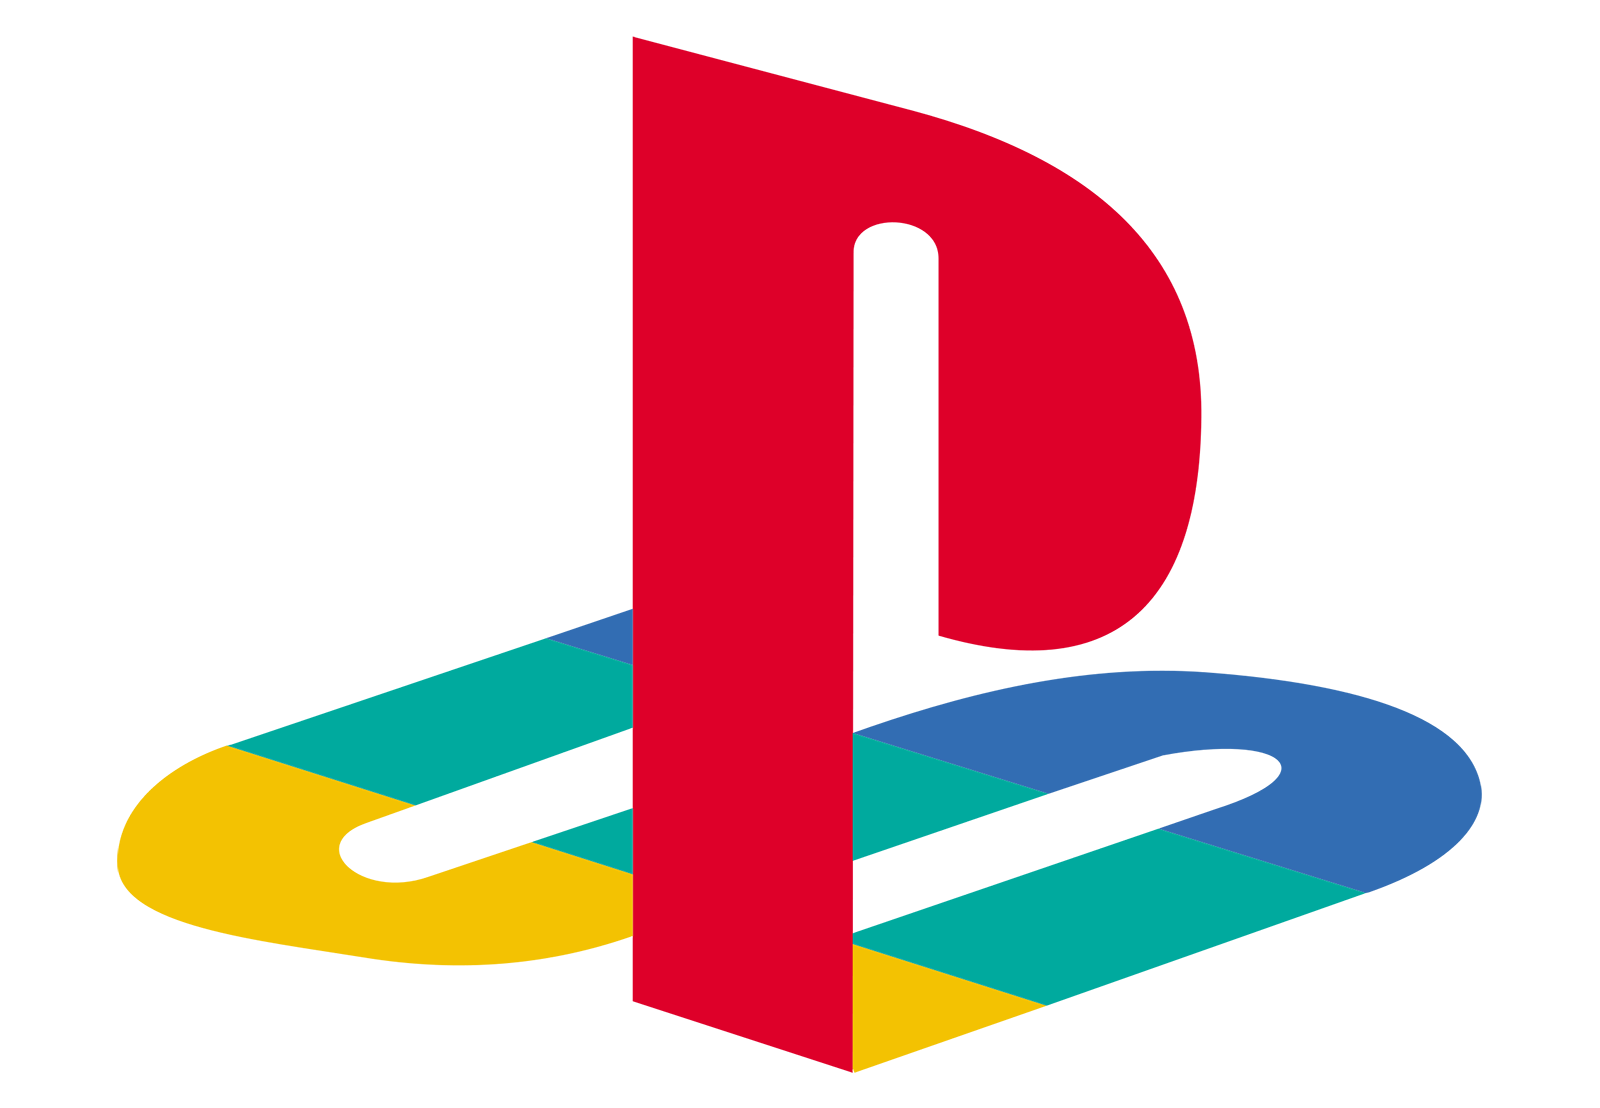 PlayStation Logo, PlayStation Symbol, Meaning, History and Evolution